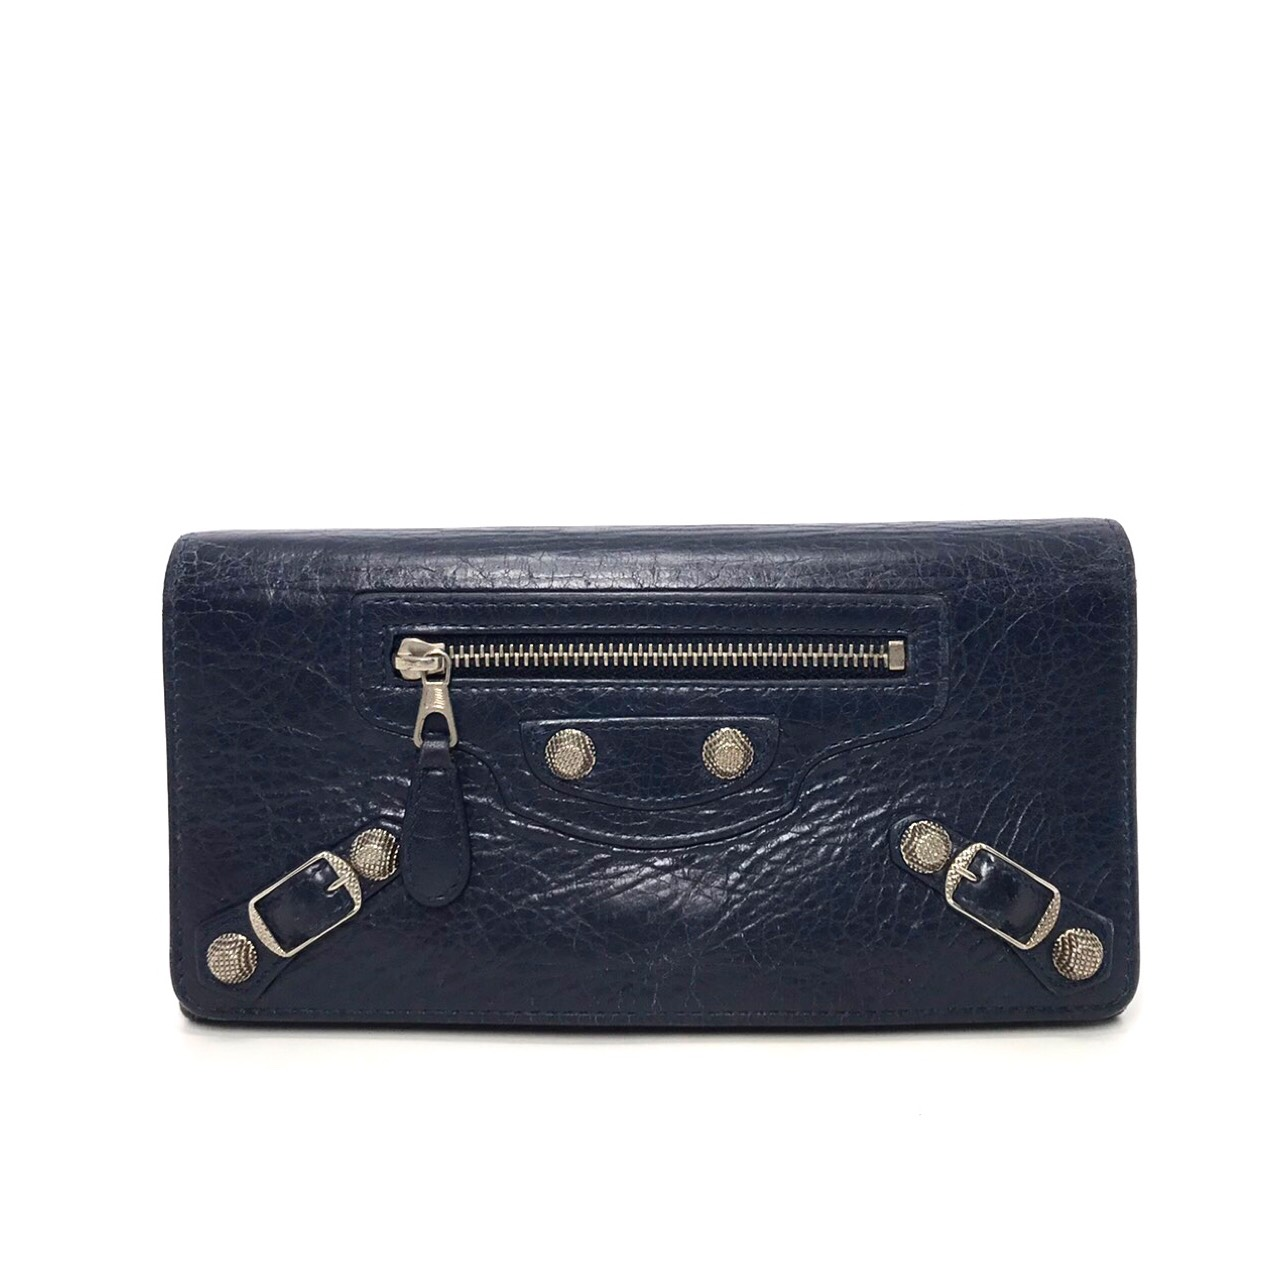 Used Balenciaga Long Wallet in Navy Leather SHW